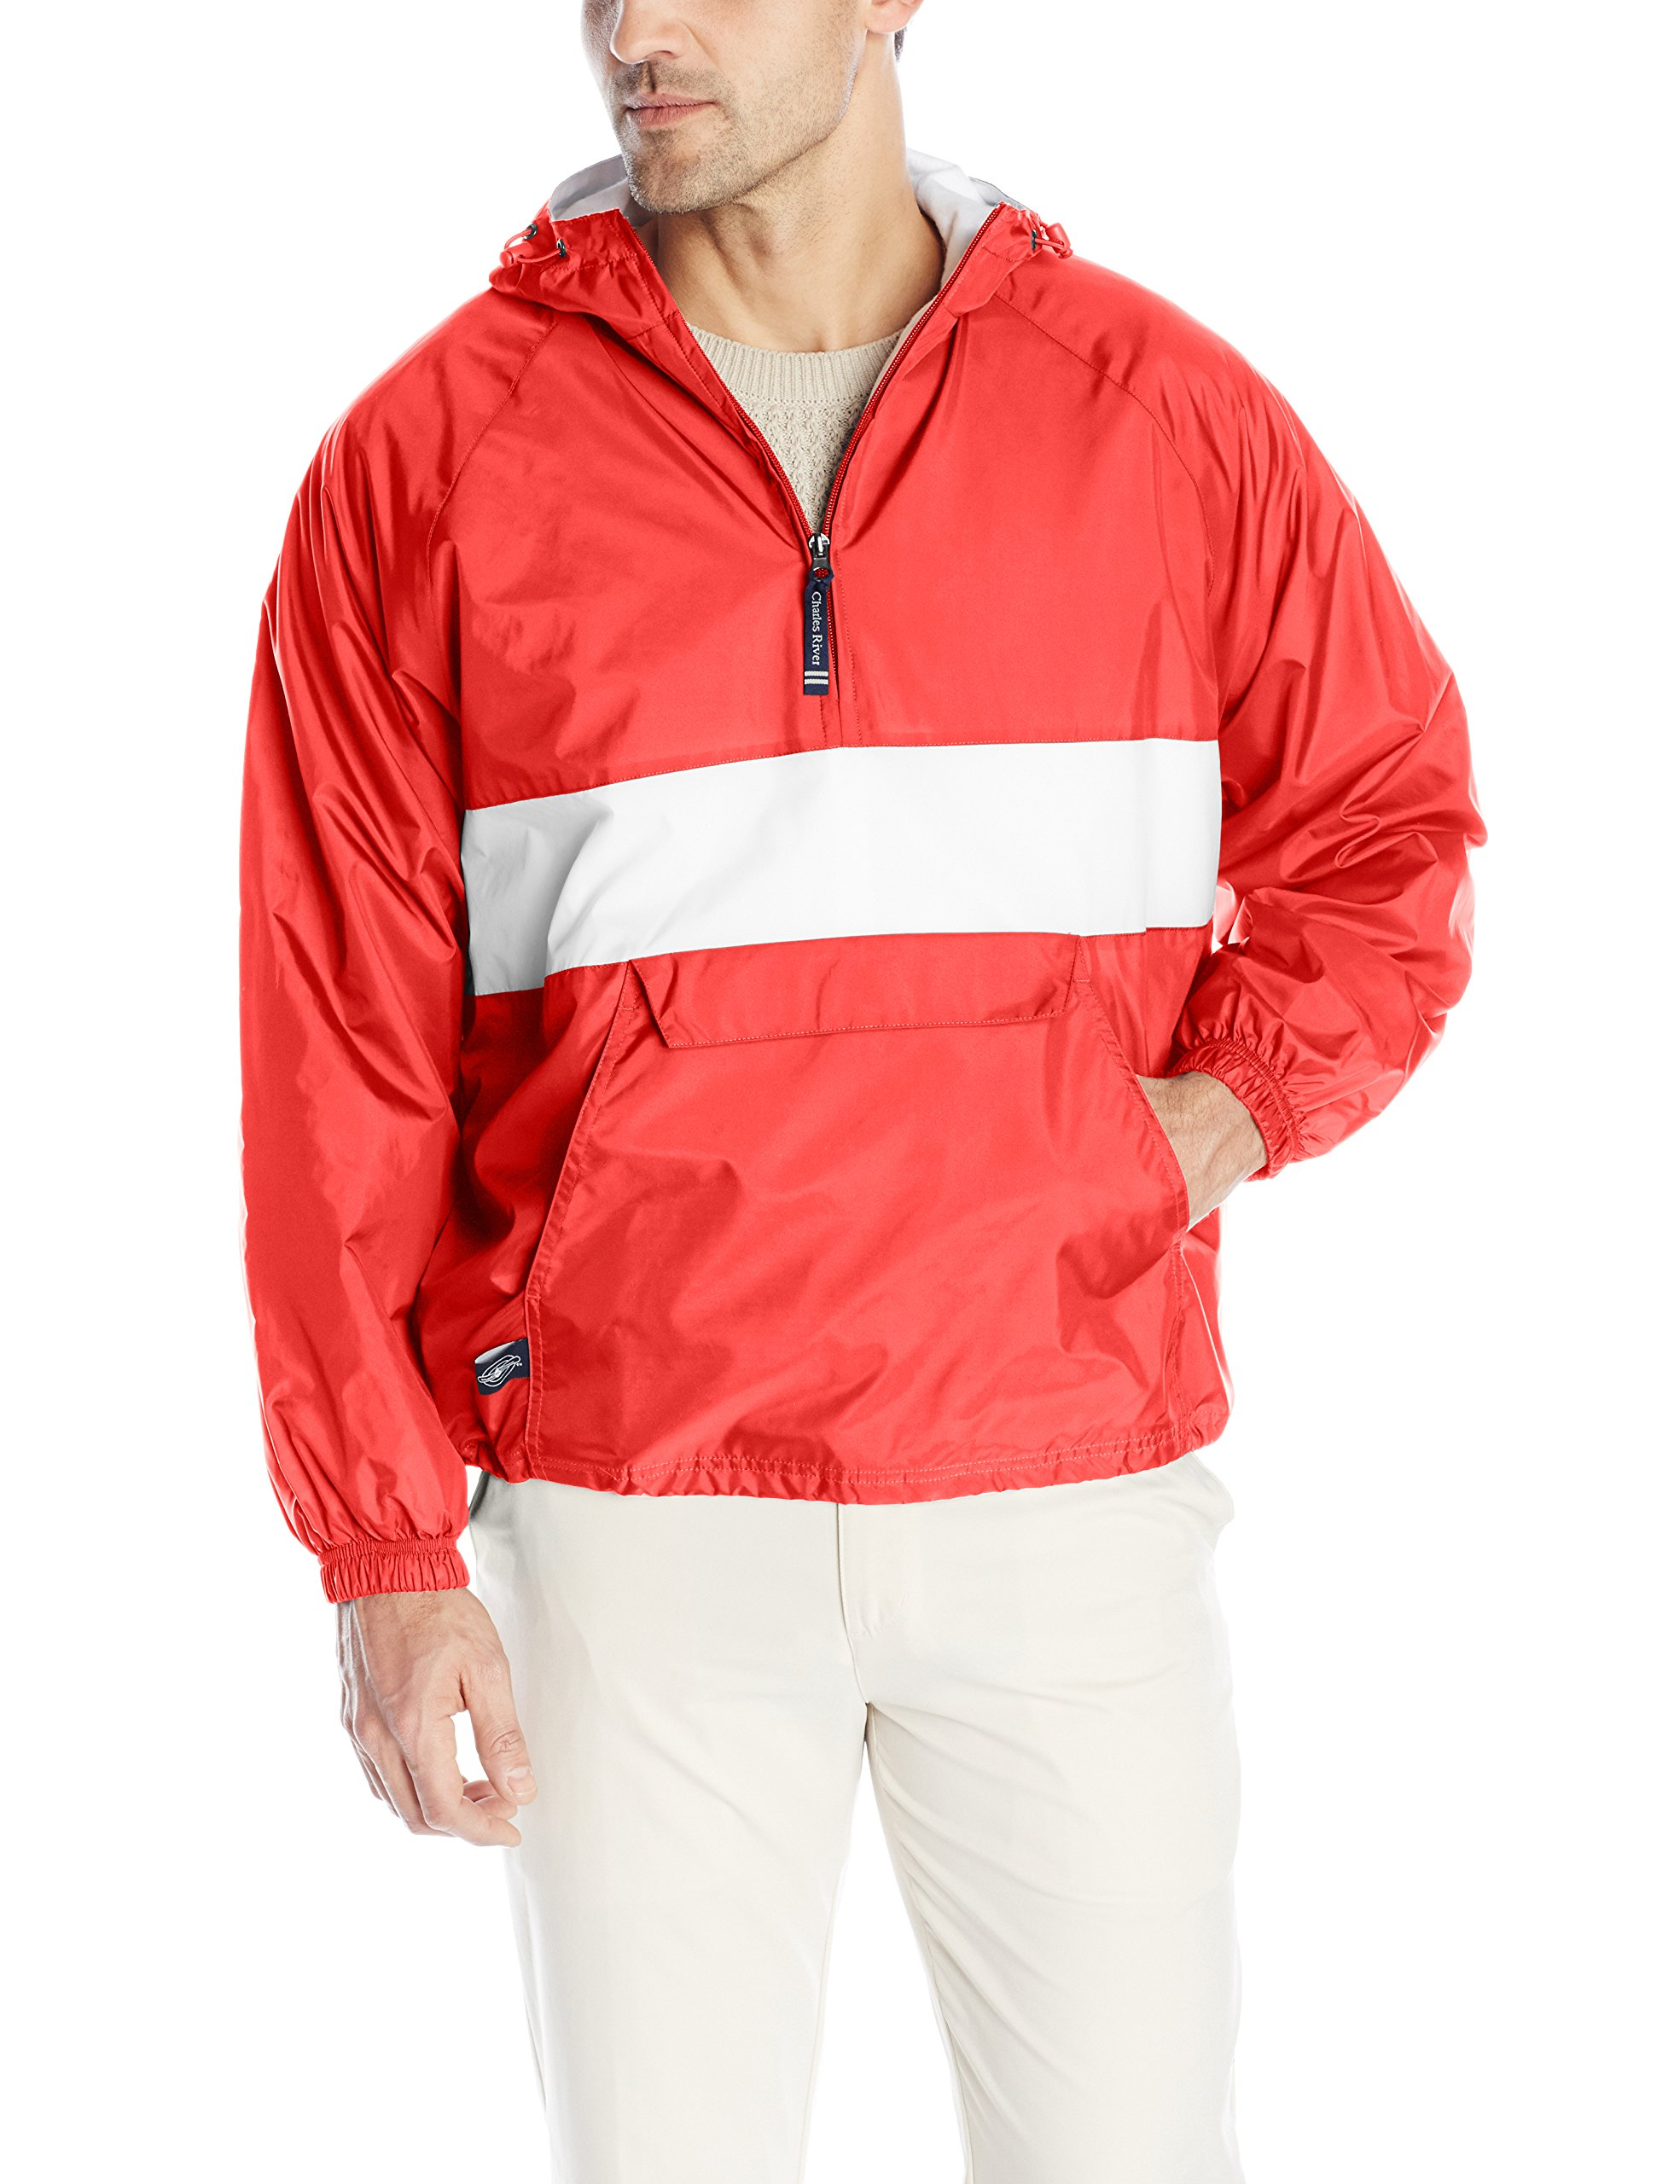 Charles River Apparel Men's Classic Striped Pullover Jacket, Red/White, Small